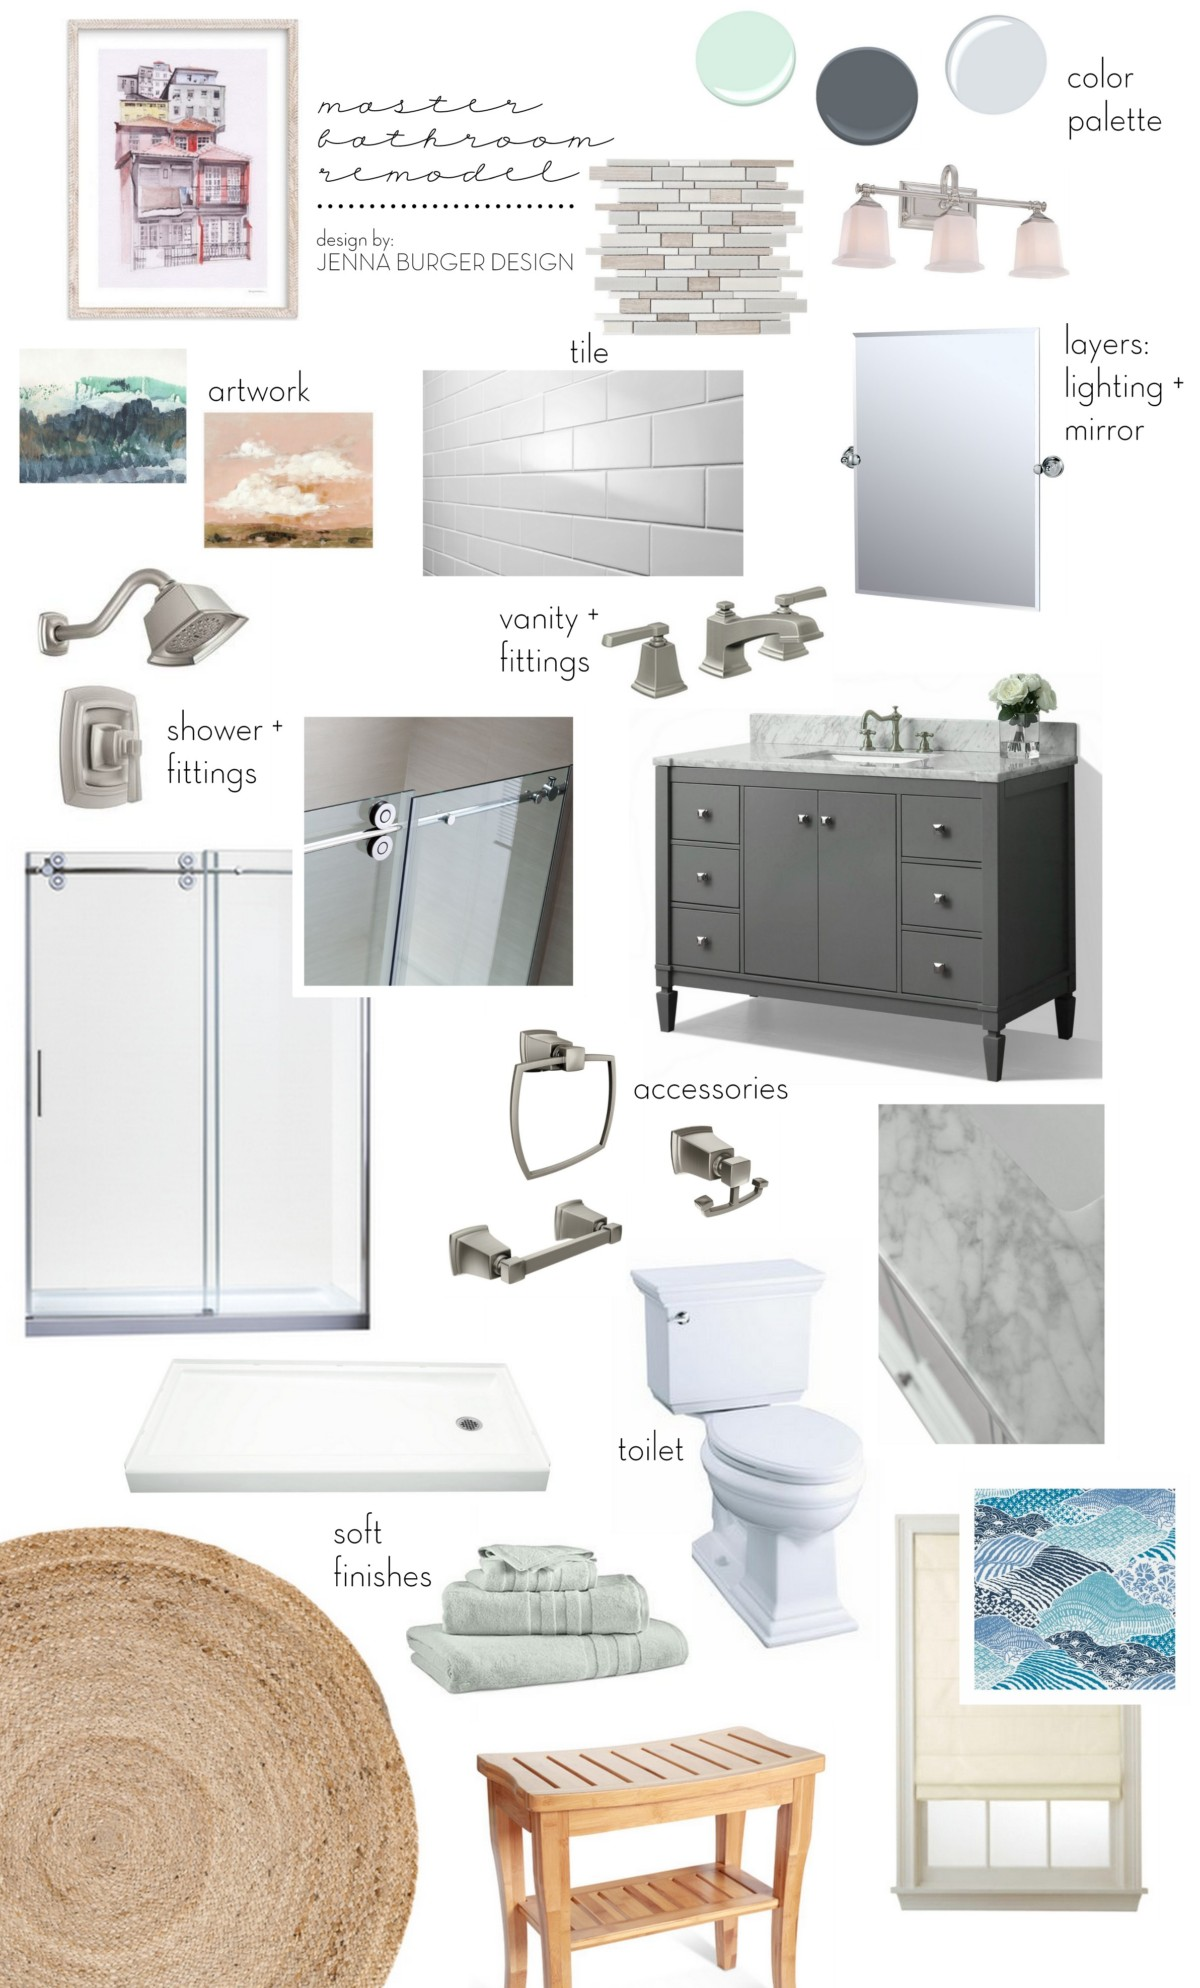 Bathroom Design Board master bathroom renovation: plan + mood board - jenna burger